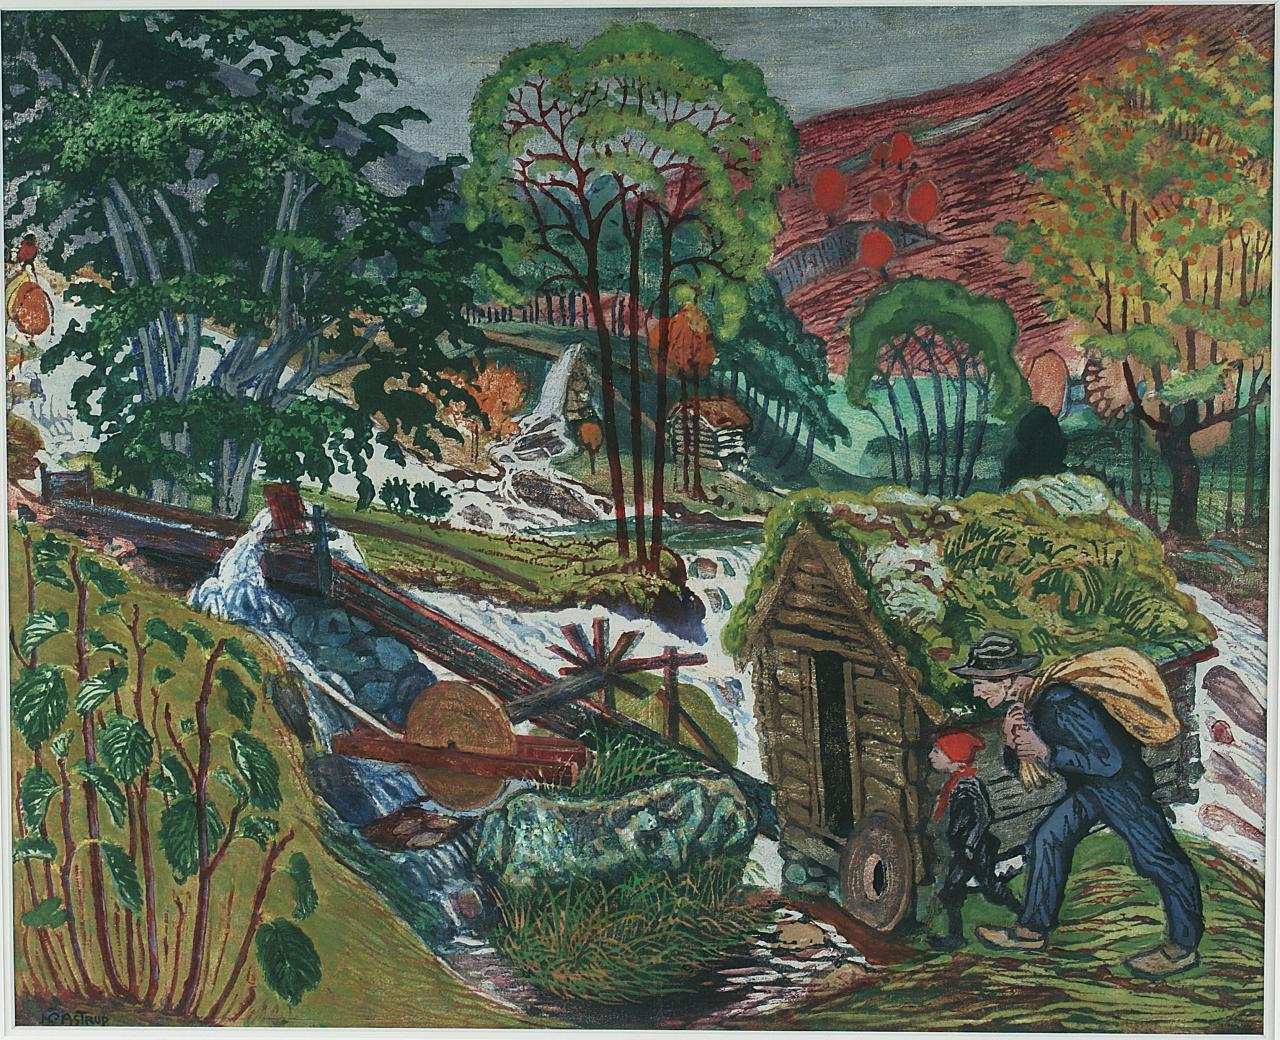 'Kvennagongsvatn' or 'Millstream.' Image: Courtesy of Nikolai-Astrup.no. Unauthorized use is prohibited.